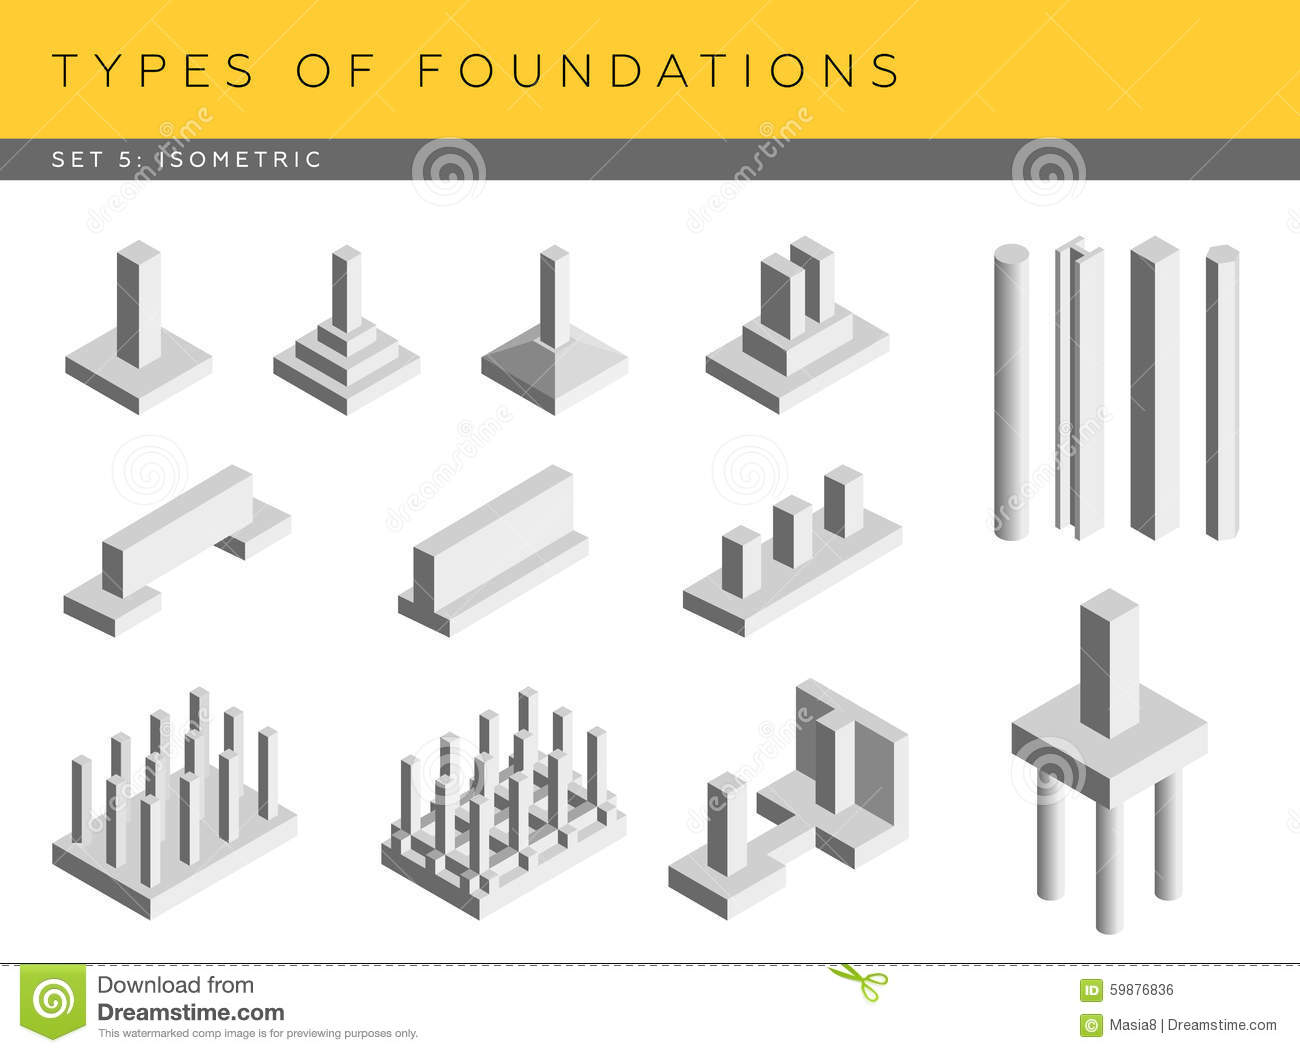 Types of foundations stock illustration image 59876836 Foundations types